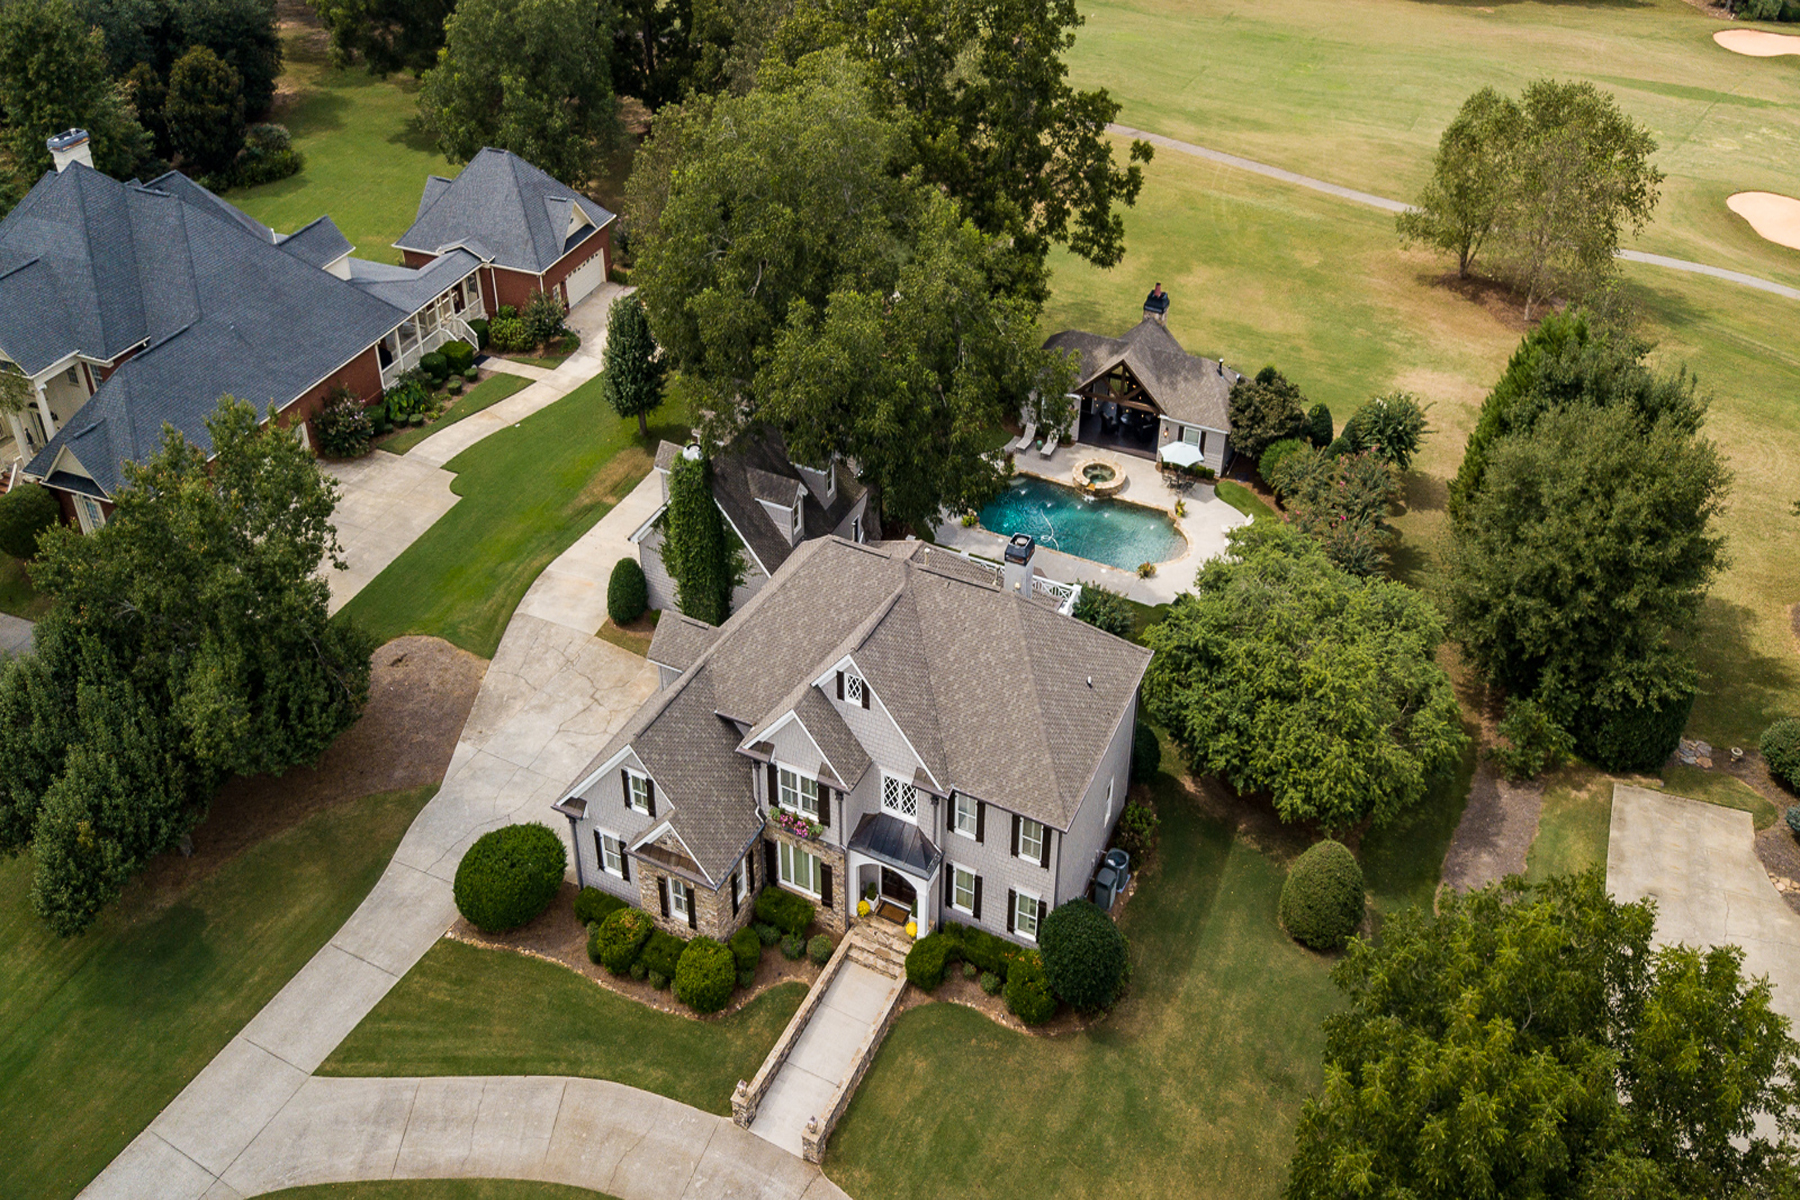 Single Family Home for Sale at Sprawling Custom Home With Gorgeous Pool, Spa, Pool House And Four Car Garage 150 Isleworth Way Fayetteville, Georgia 30215 United States